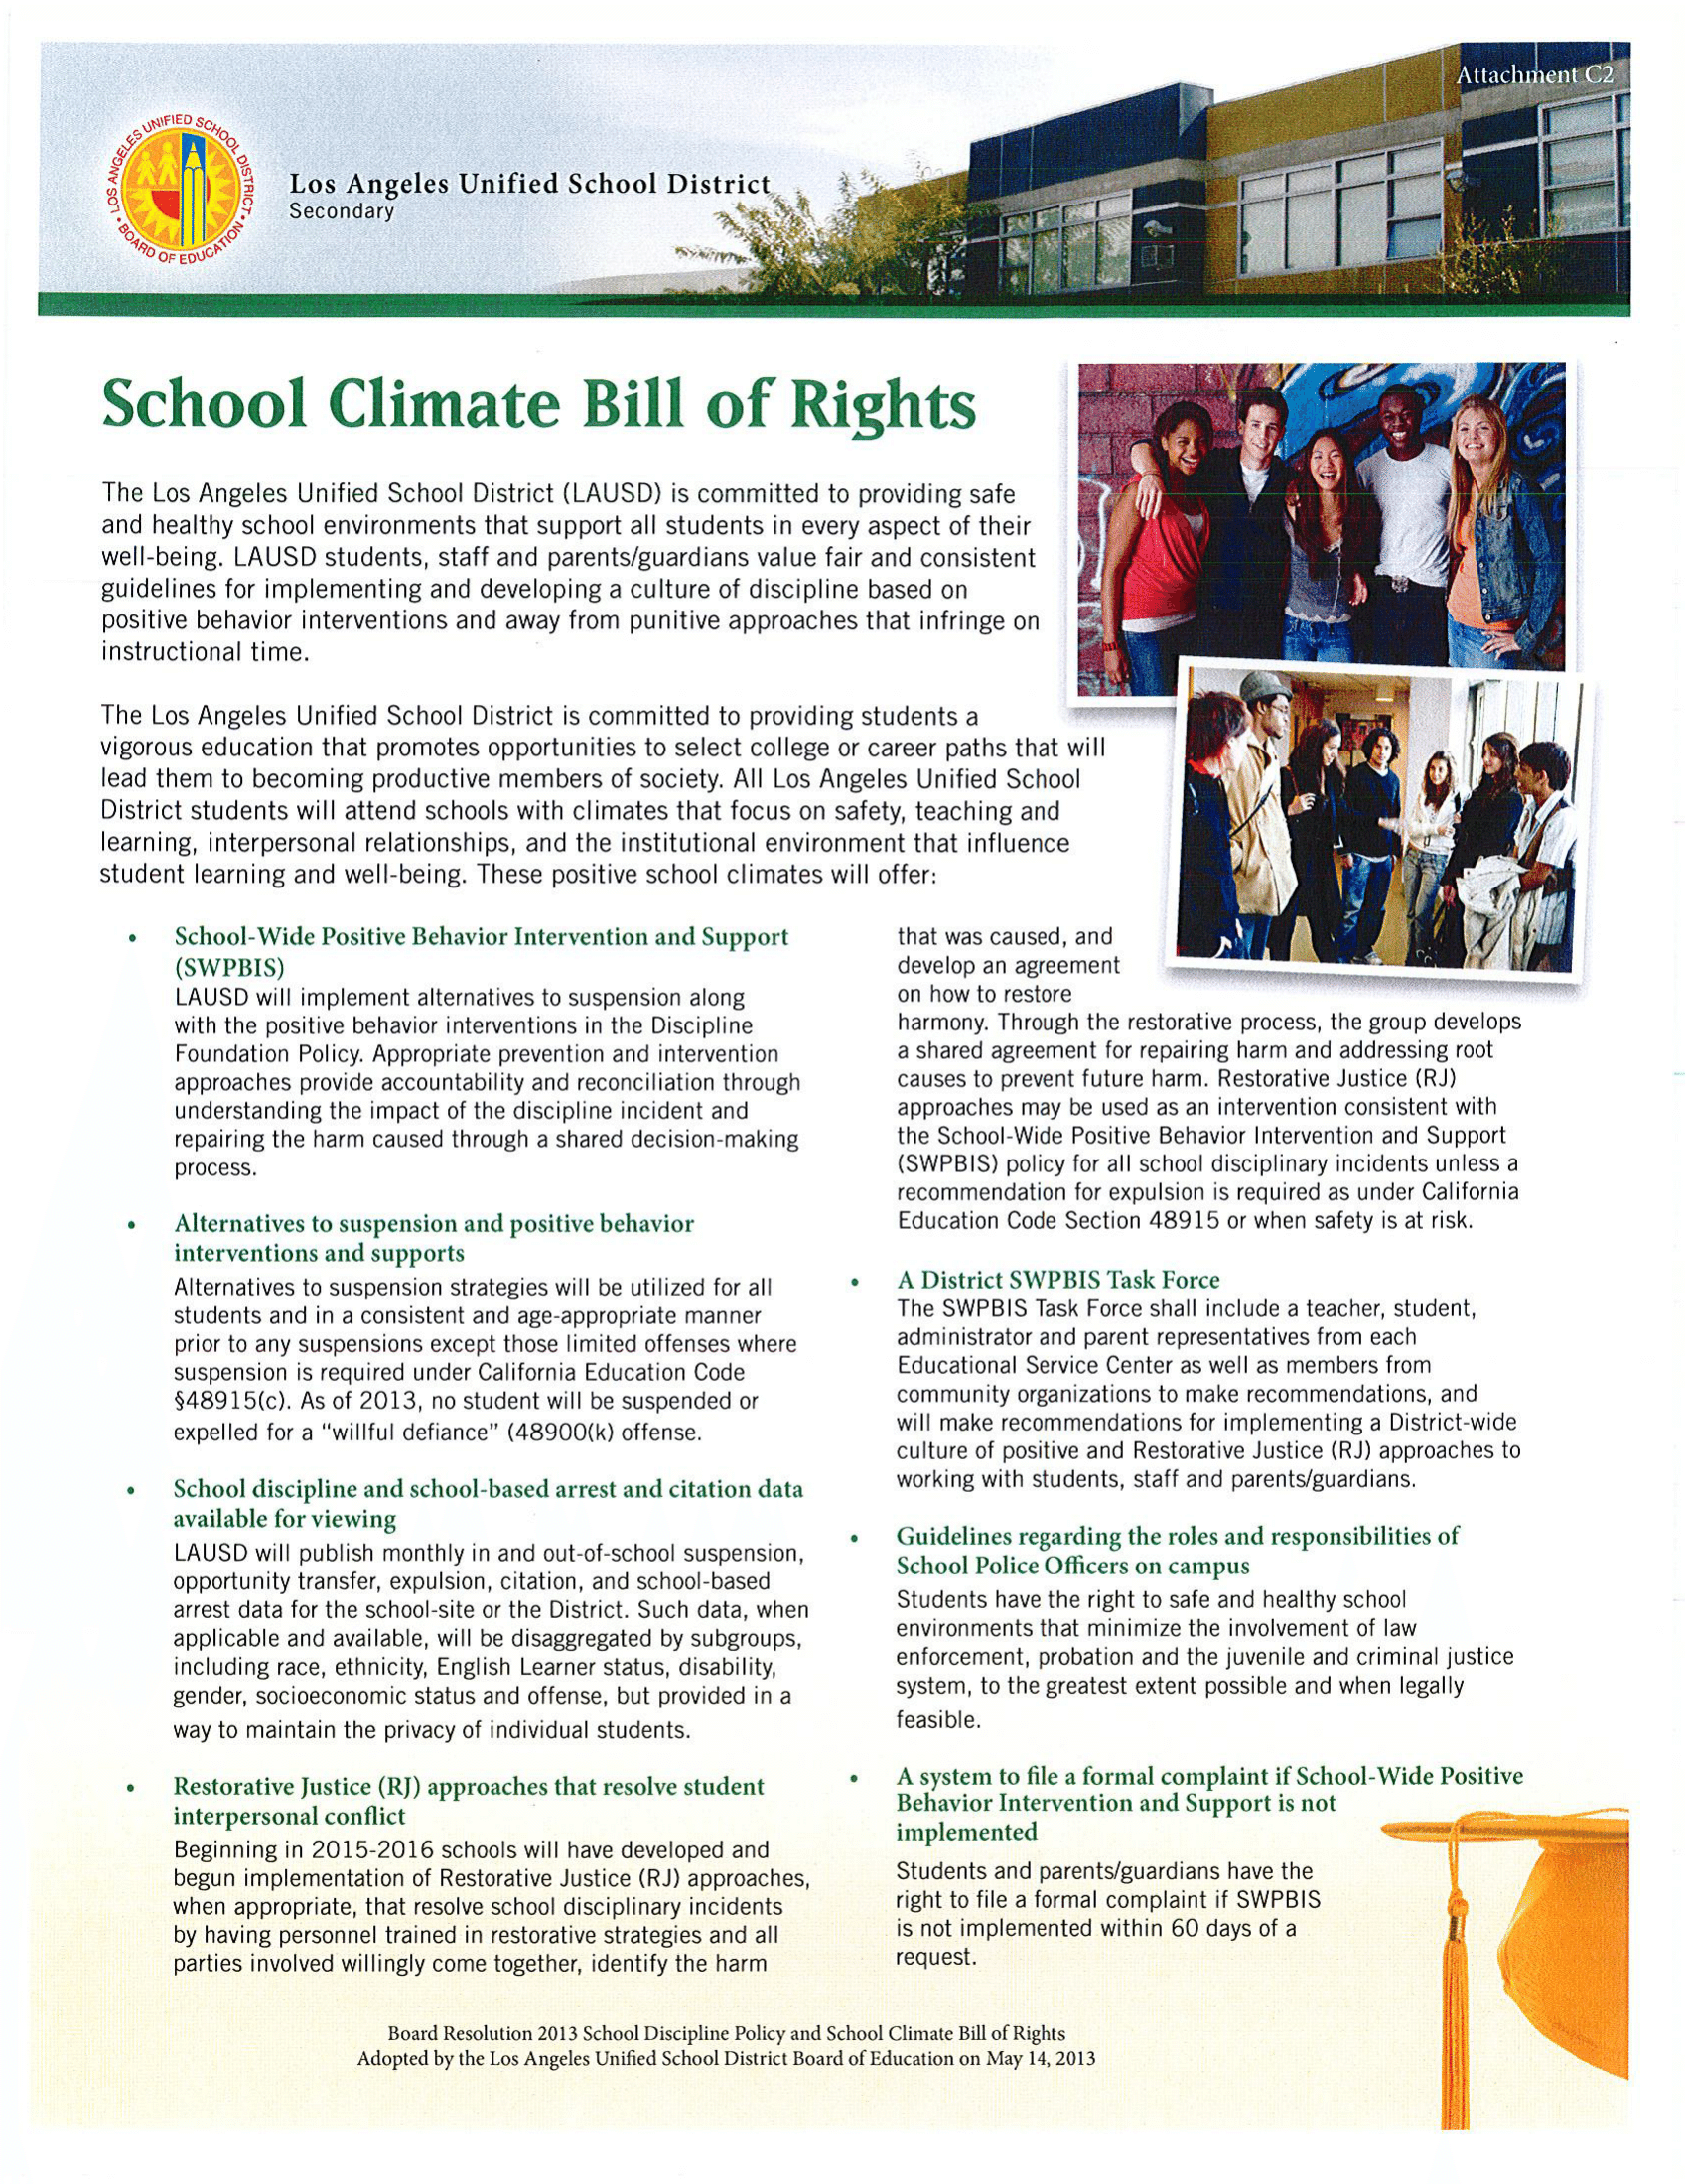 School Climate Bill of Rights-2.png